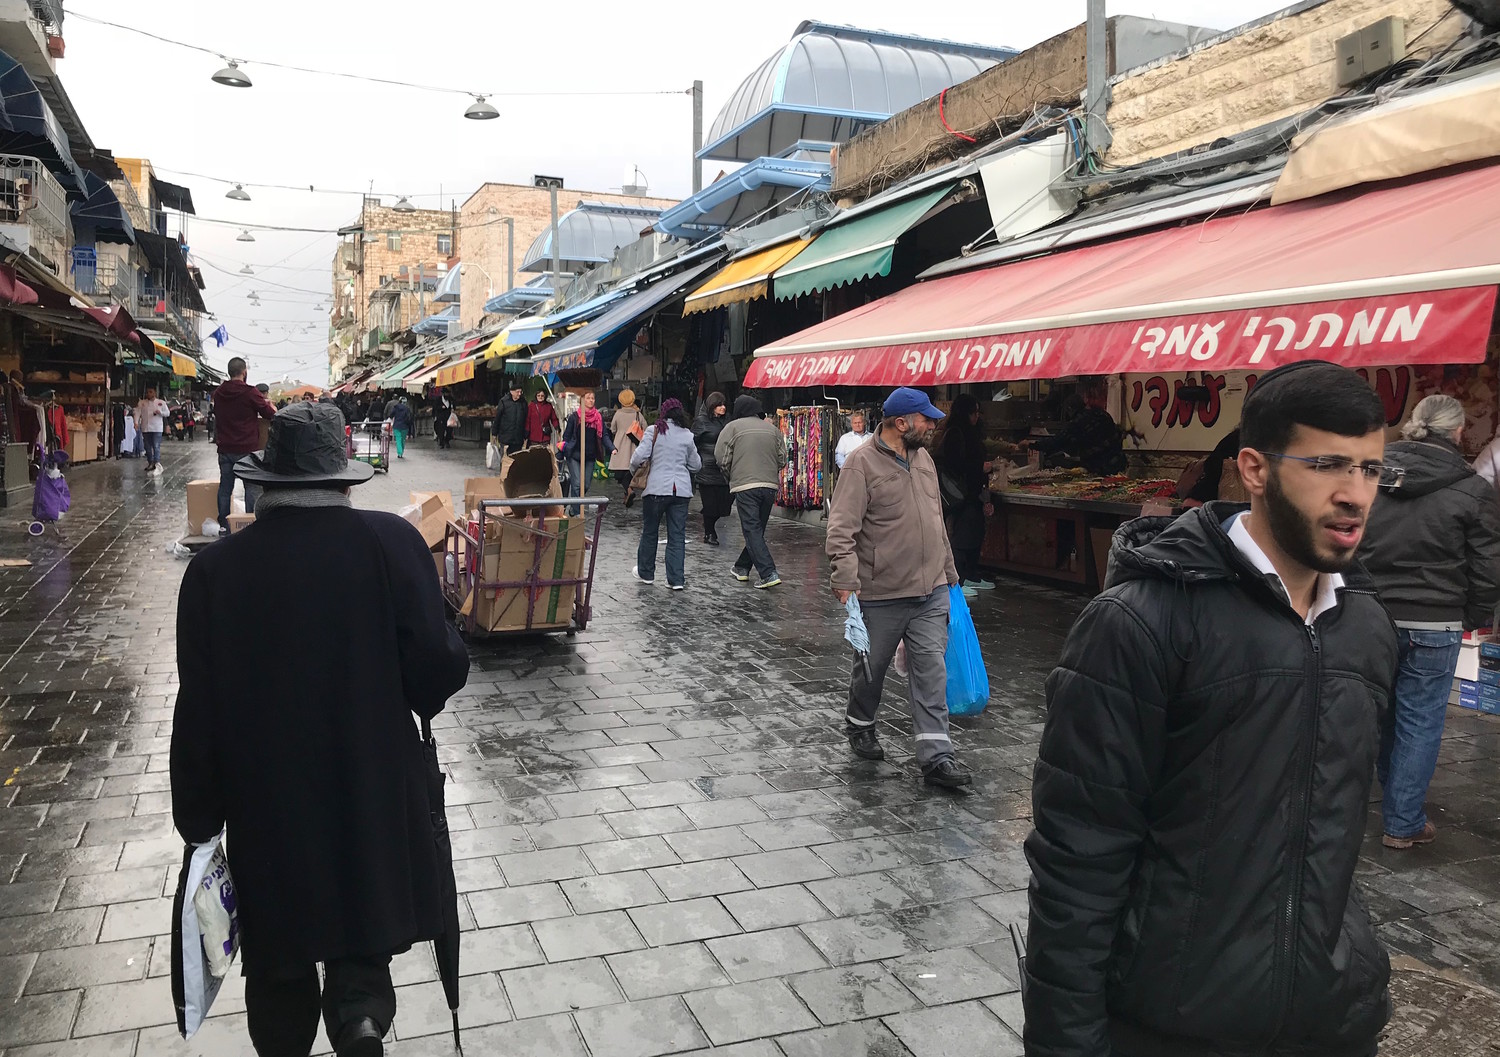 People shopping in the rain at the Mahane Yehuda market in Jerusalem, Dec. 6, 2017.